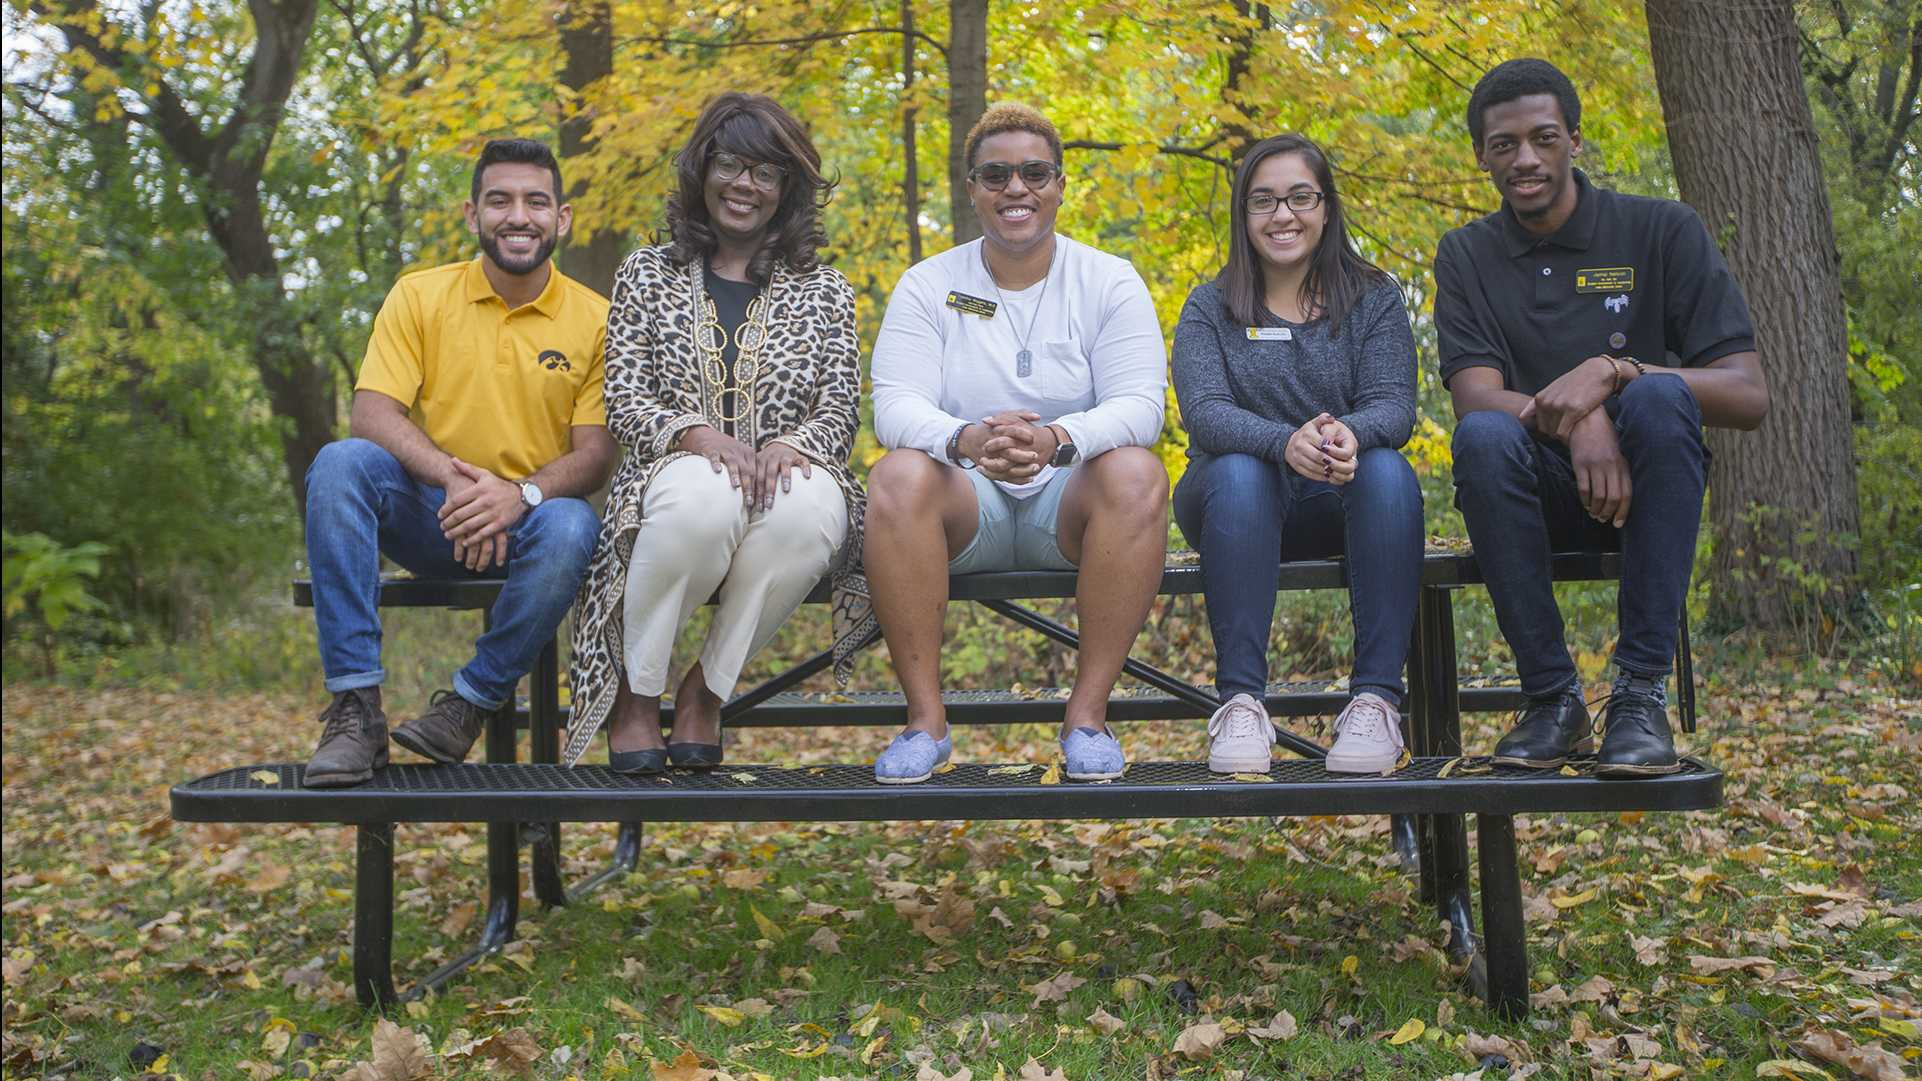 From left: Jesus Payan, VP for Student Life Melissa Shivers, Tab Wiggins, Prisma Ruacho, and Jamal Nelson sit outside the Asian Pacific American Cultural Center during an interview with Shivers and leaders from the UI cultural and resource centers on Friday, Oct. 20, 2017. (Lily Smith/The Daily Iowan)